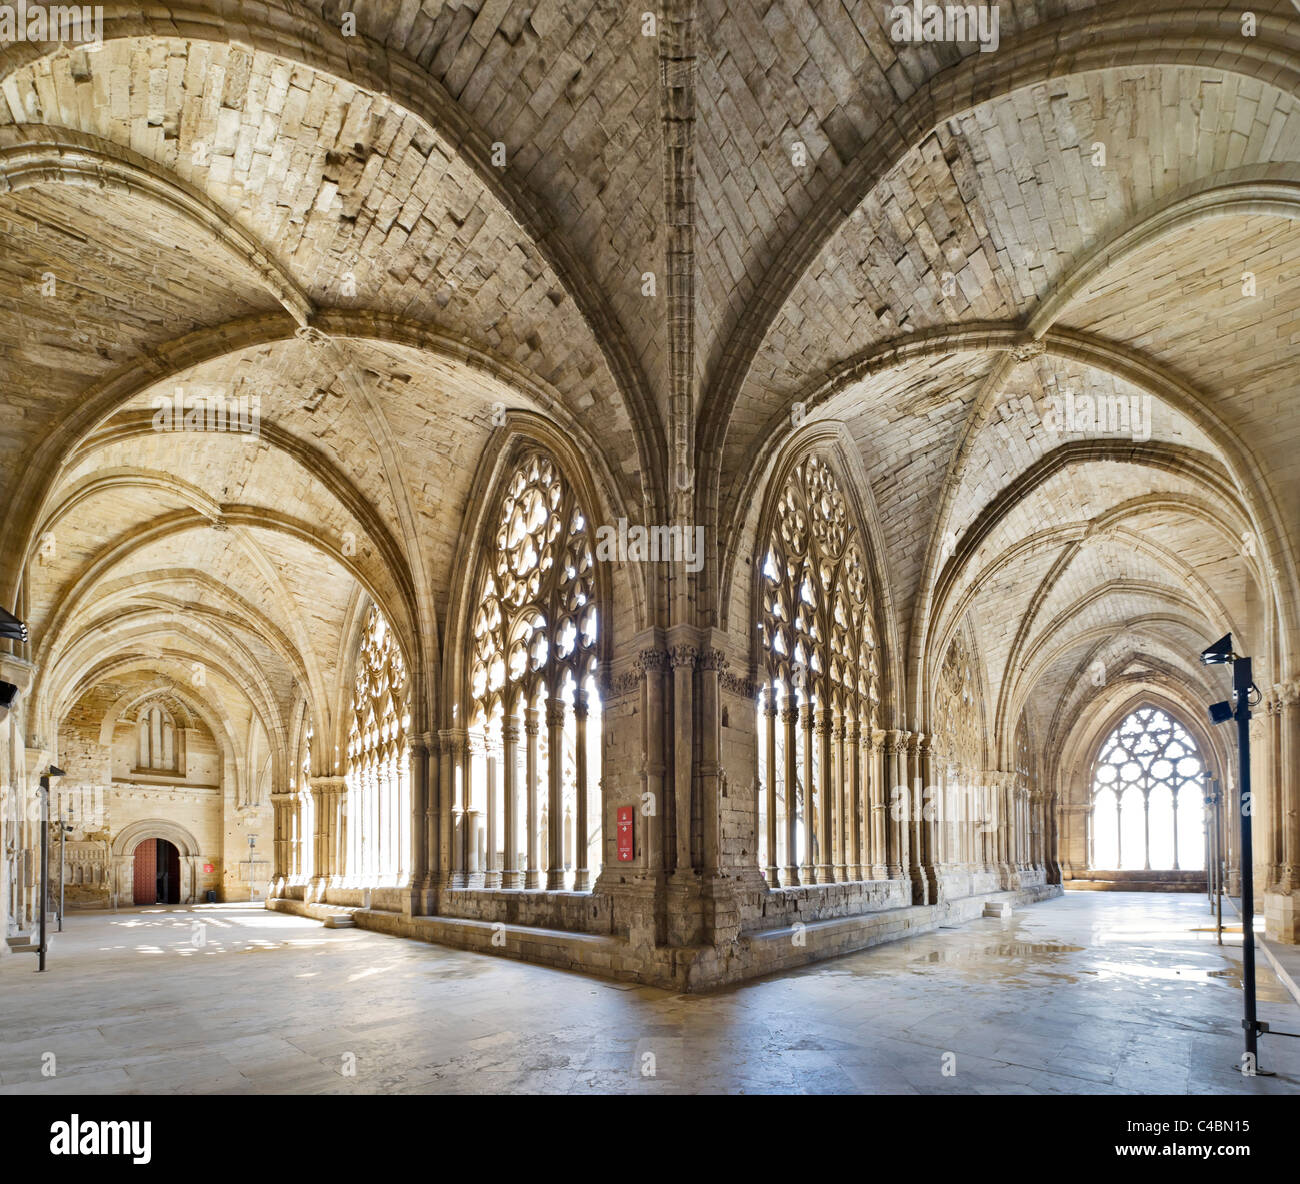 Gothic cloisters in the Seu Vella (Old Cathedral), Lleida (Lerida), Catalunya, Spain - Stock Image